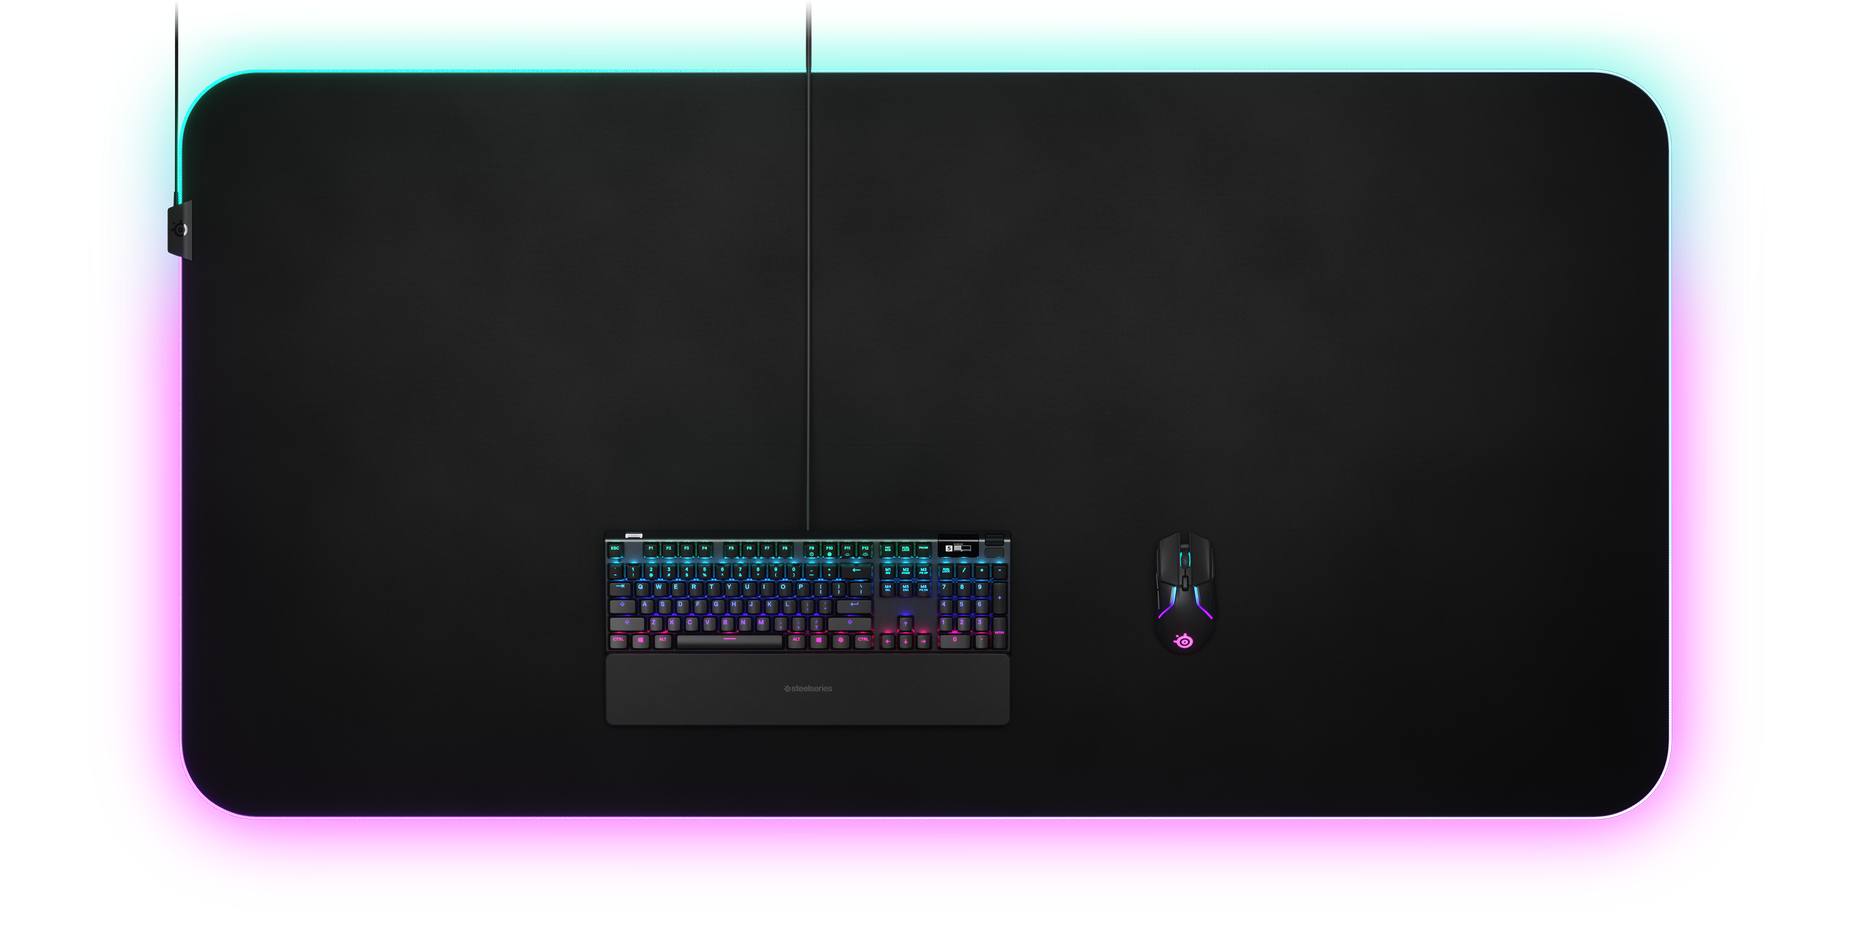 Mouse pad viewed from above with keyboard and mouse to show comparative sizing